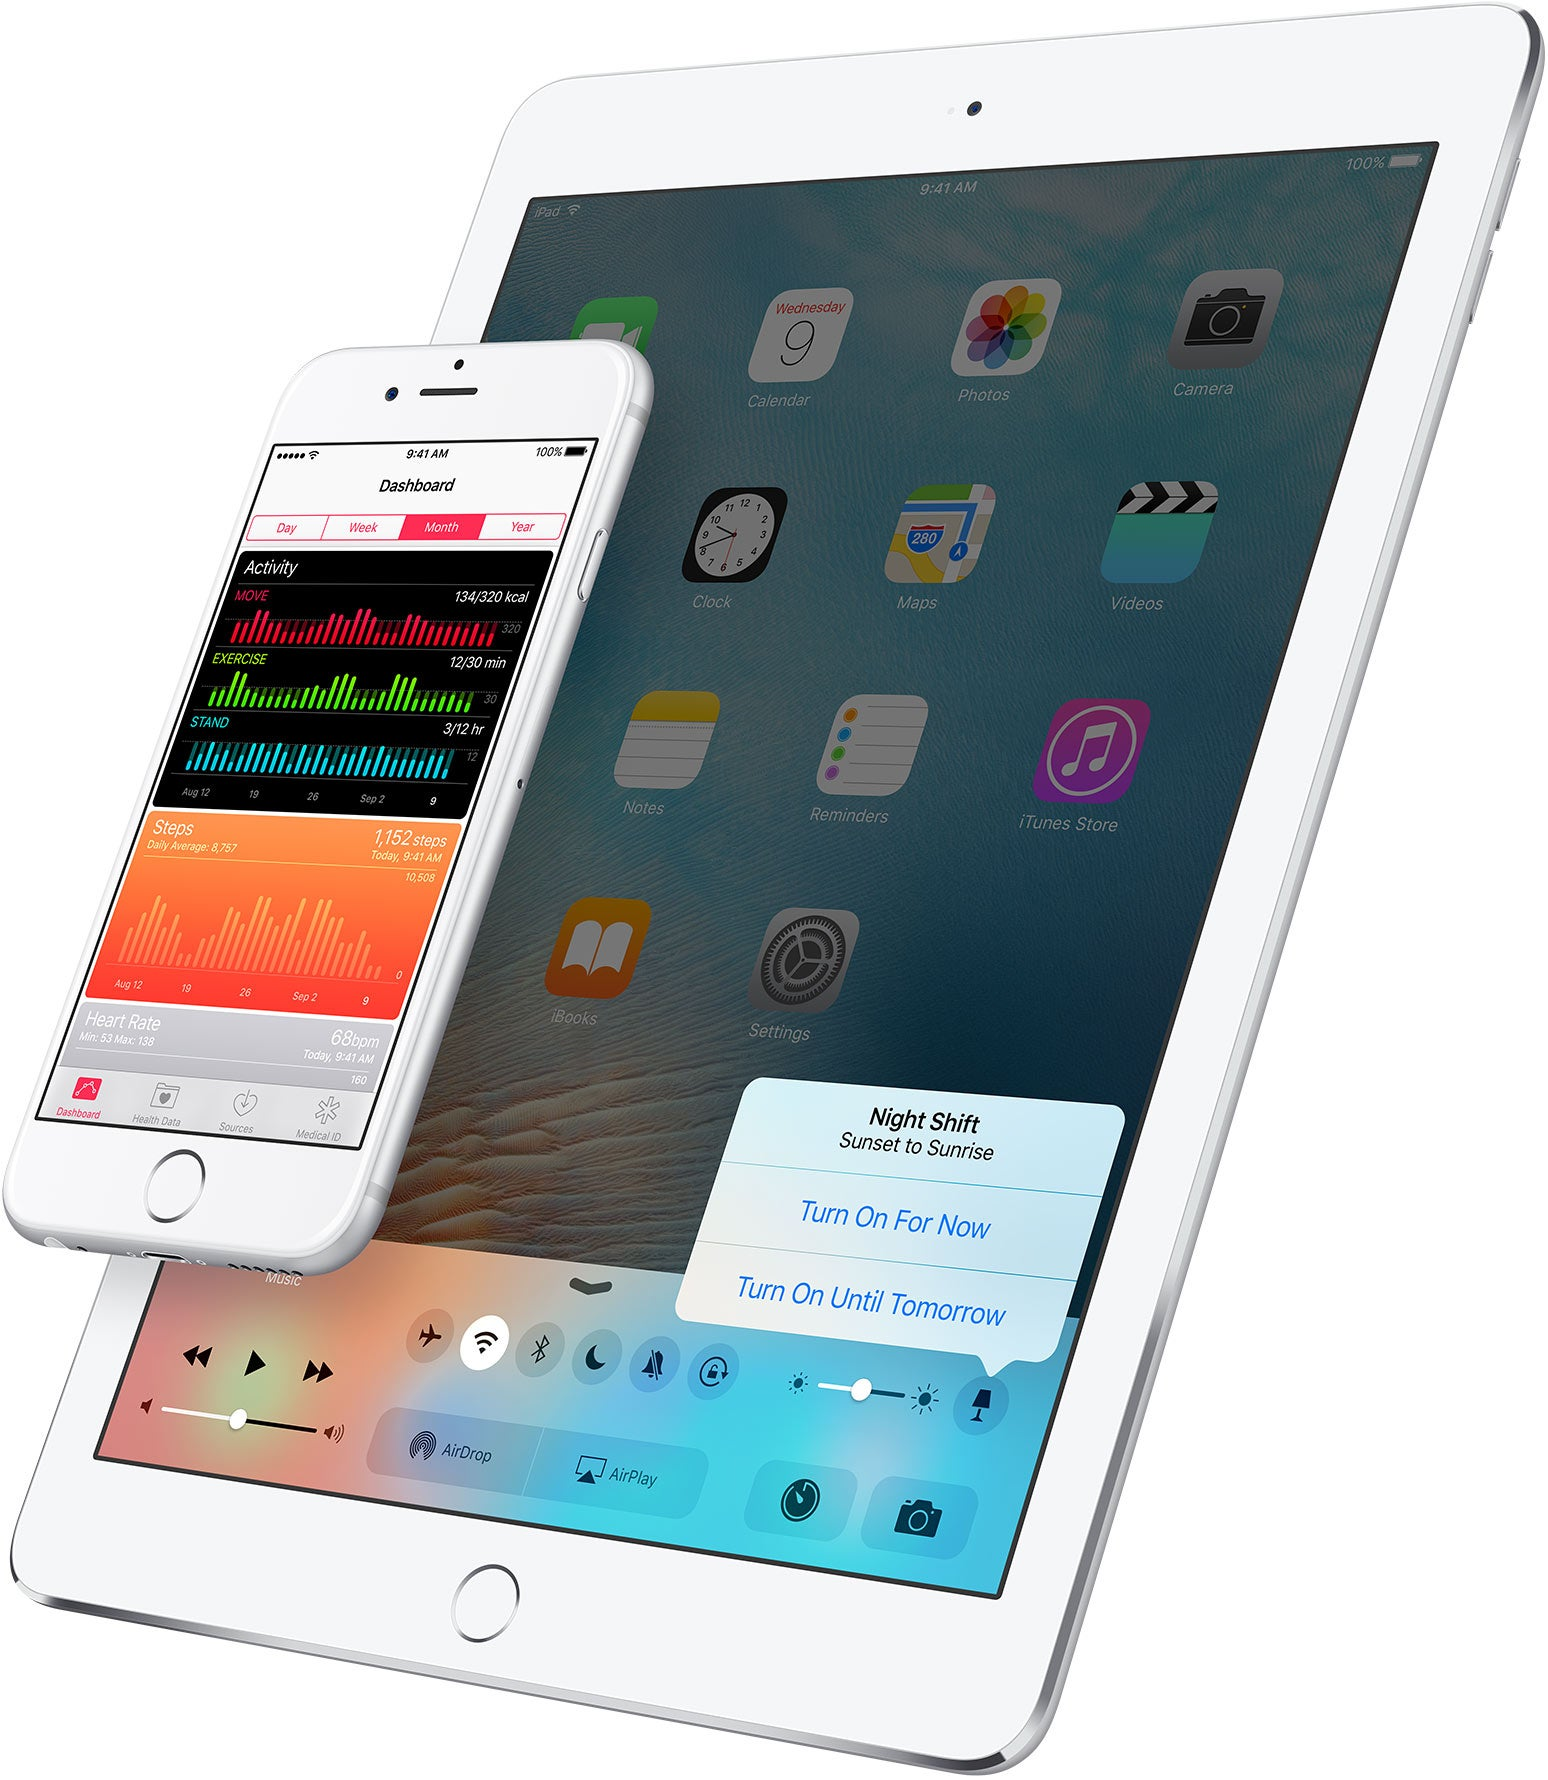 This Is How You Will Use 'Night Shift' On The iPhone and iPad